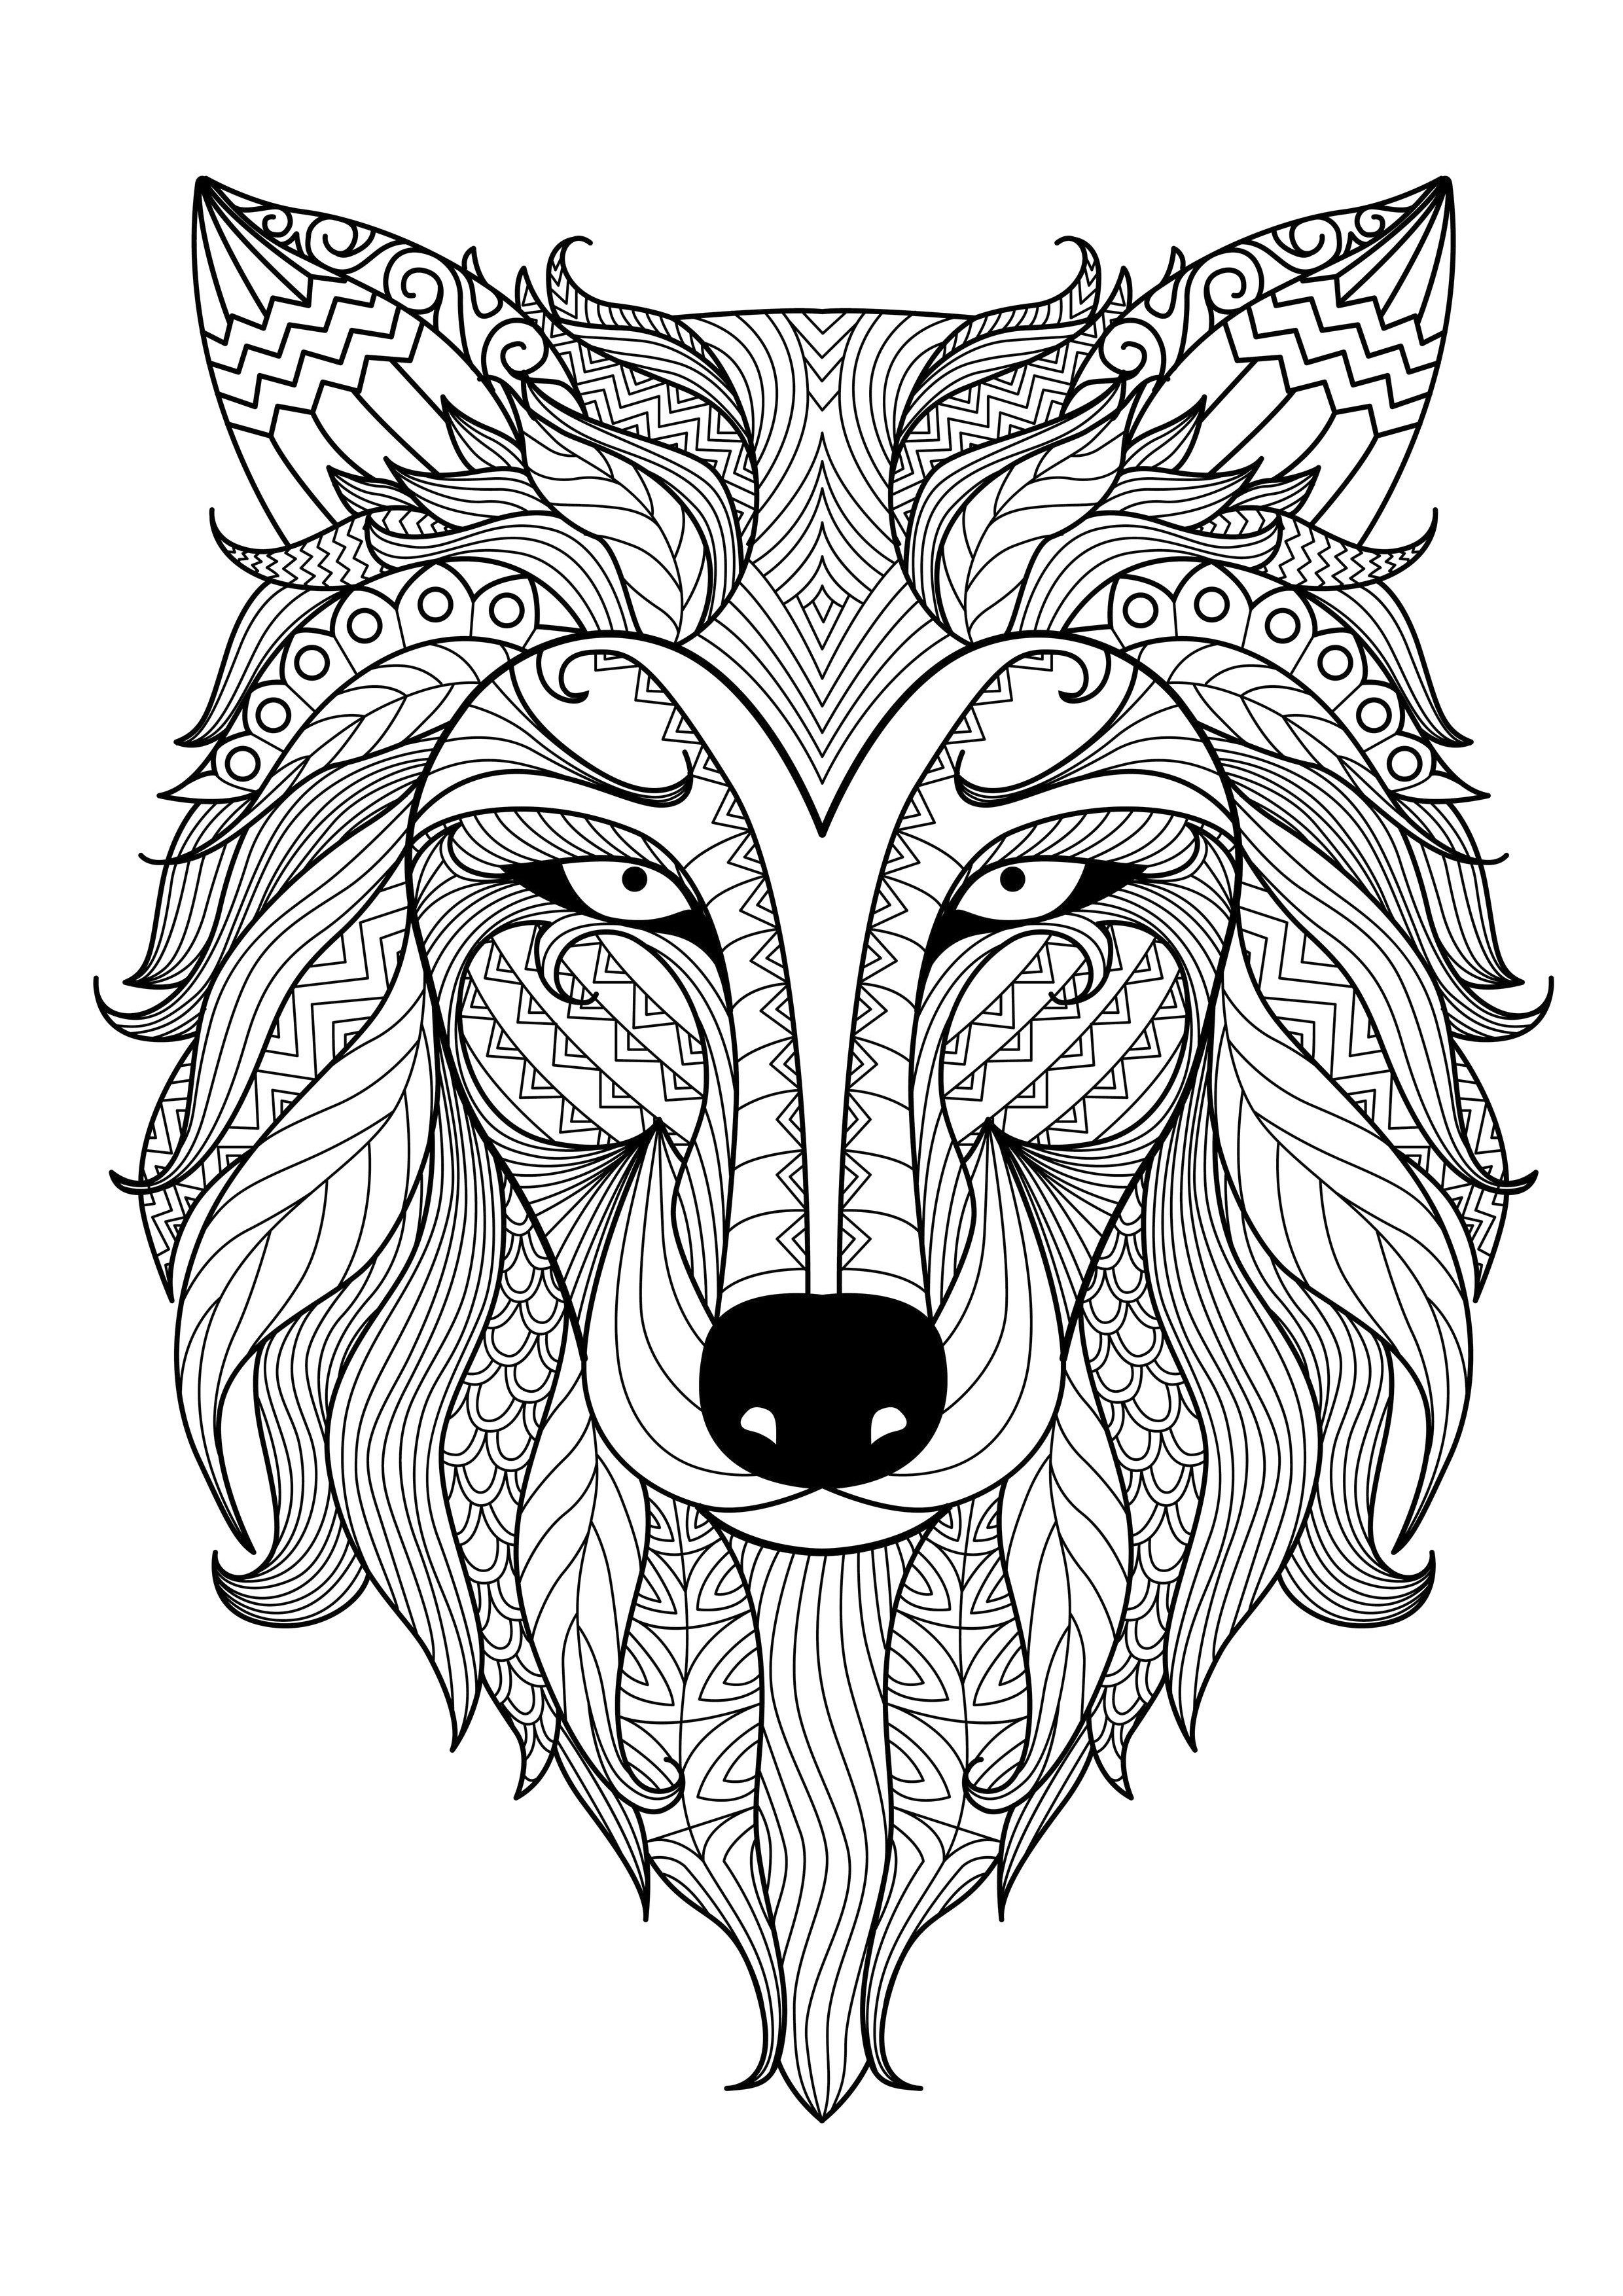 Adult Coloring Pages Wolf kickback coloring Adult